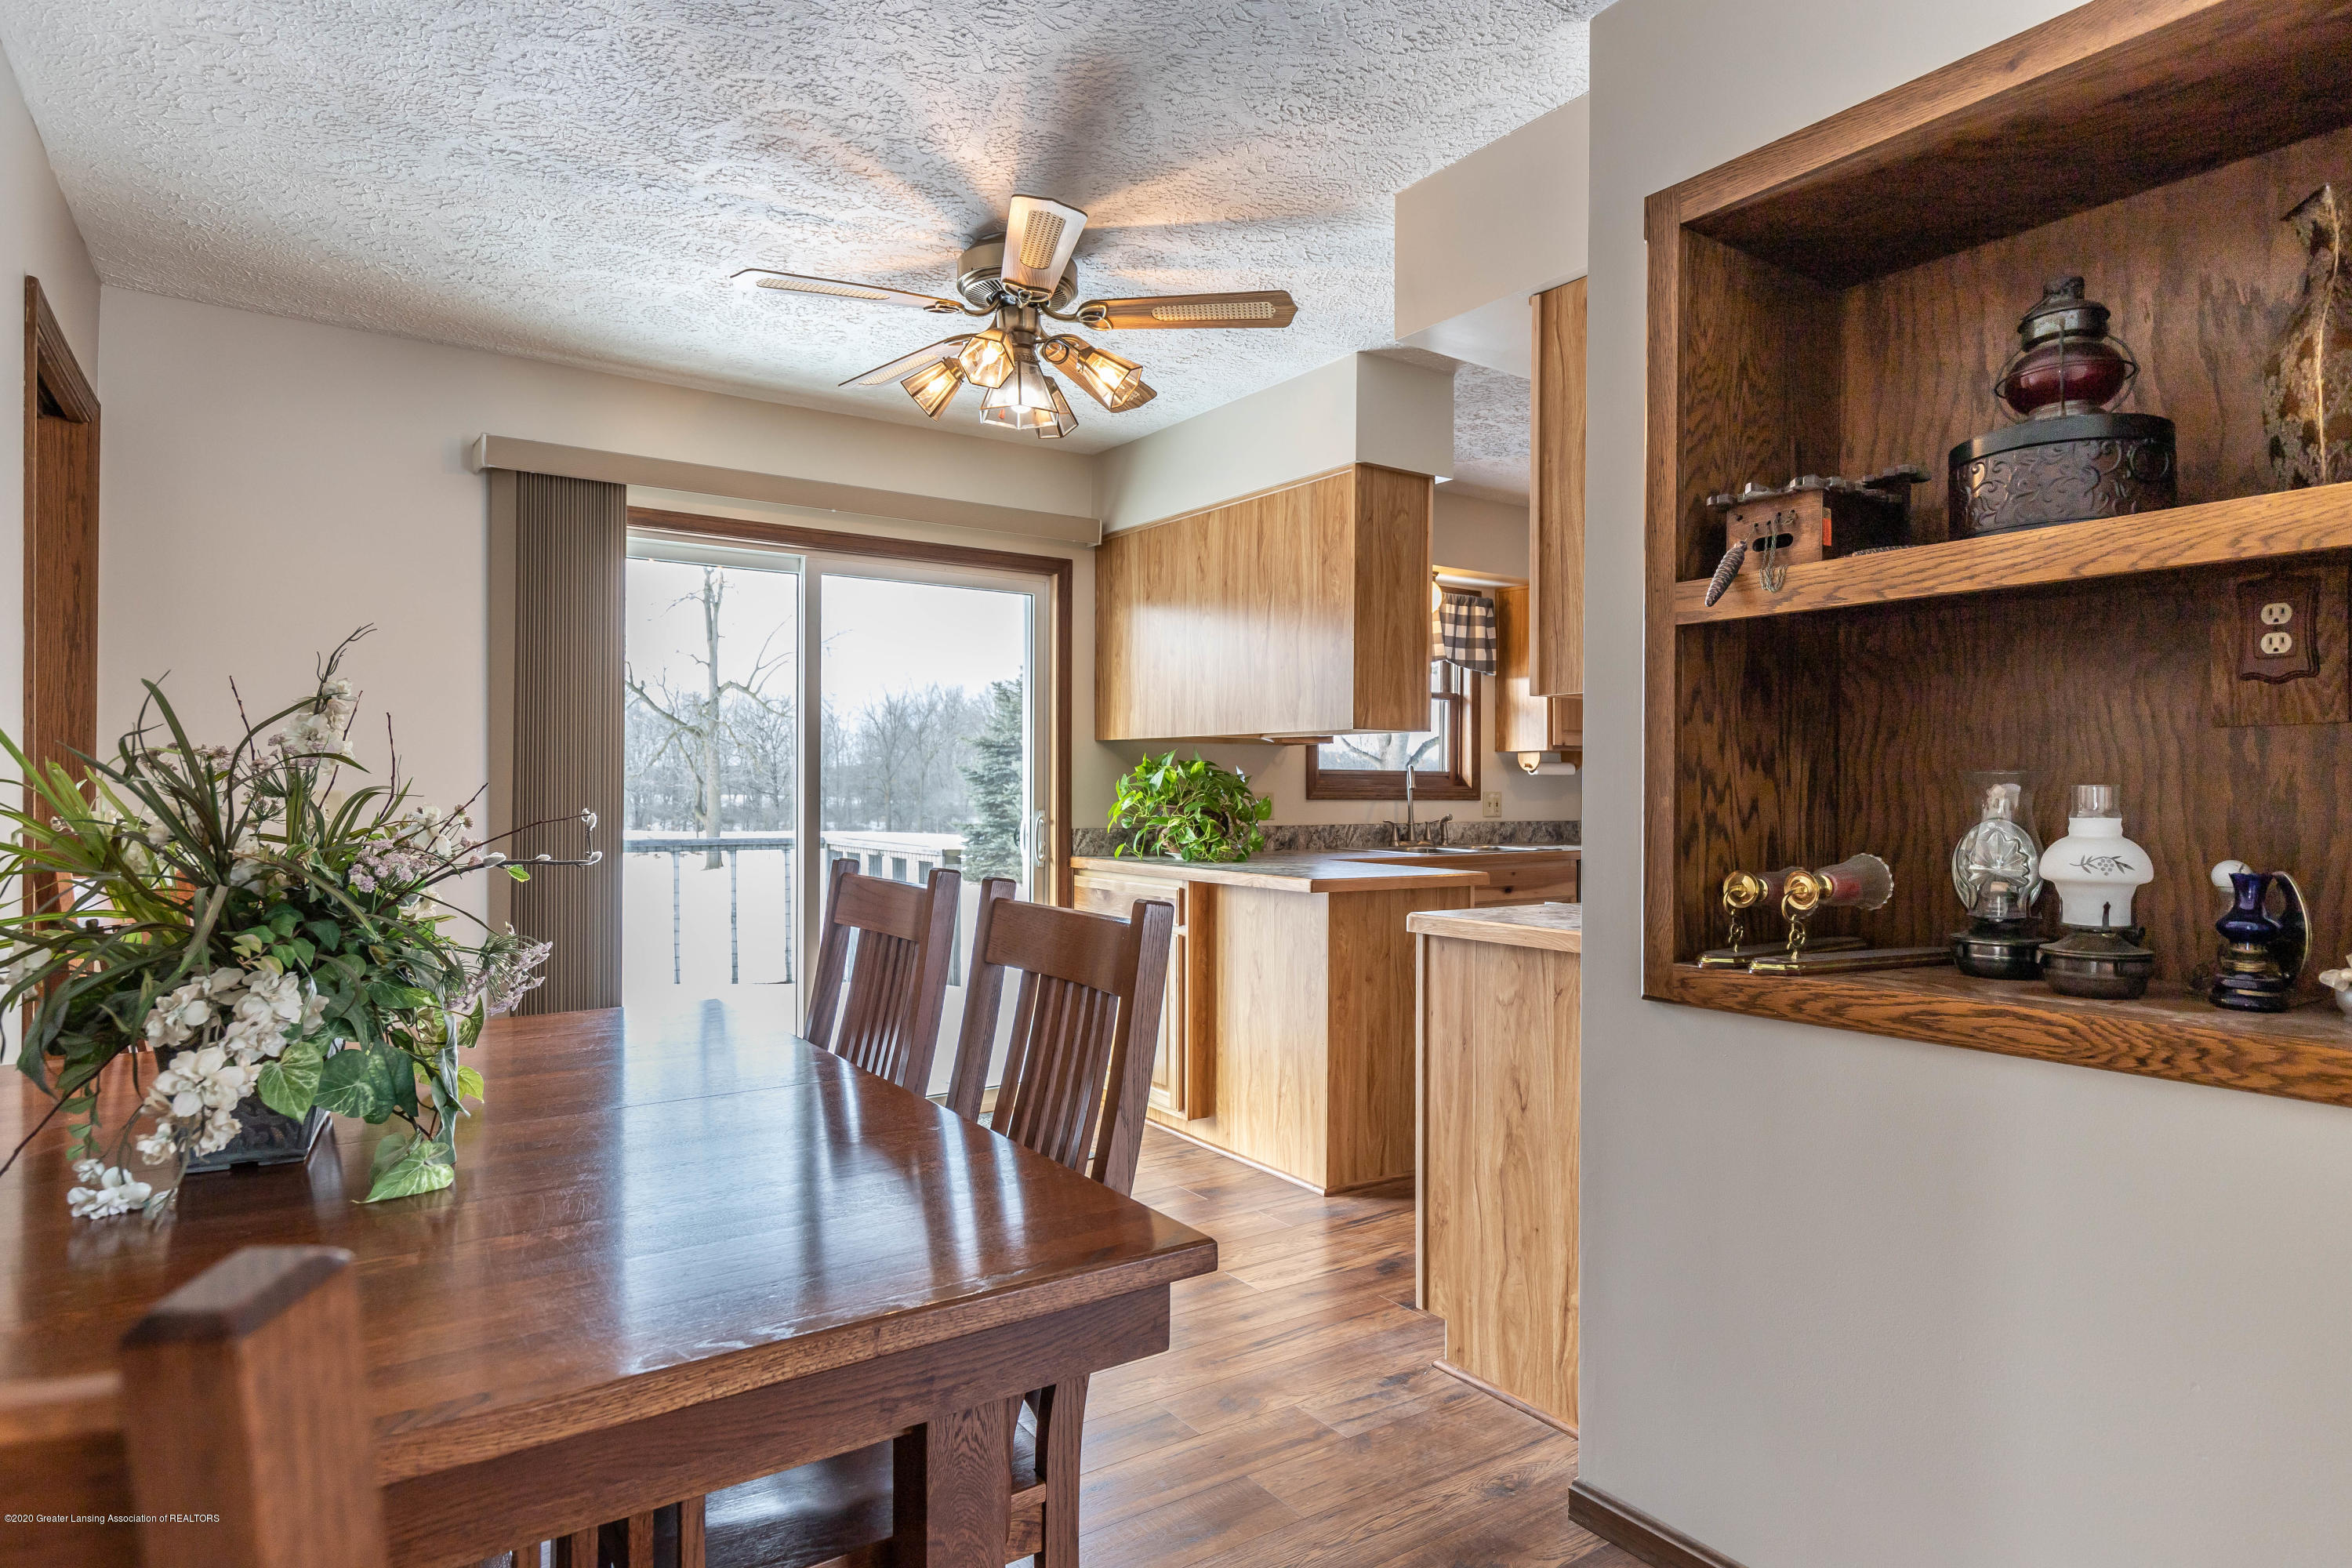 6111 S Morrice Rd - Dining Area - 7